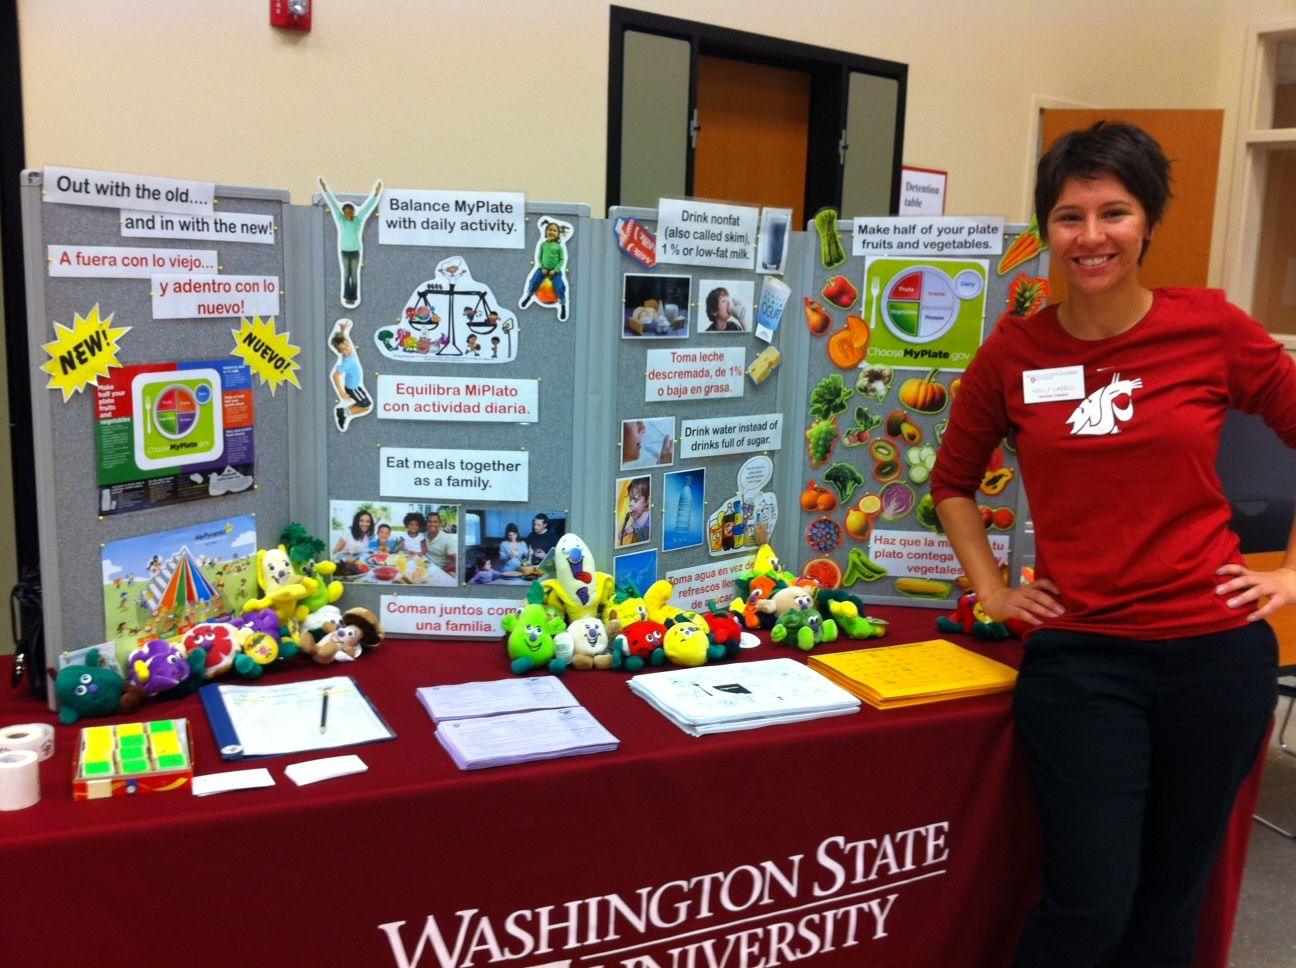 Nutrition Education Assistant Holly Lacell in her Washington State University shirt manning a colorful booth full of nutrition facts, fruit and vegetable plushies, handouts, and stickers.